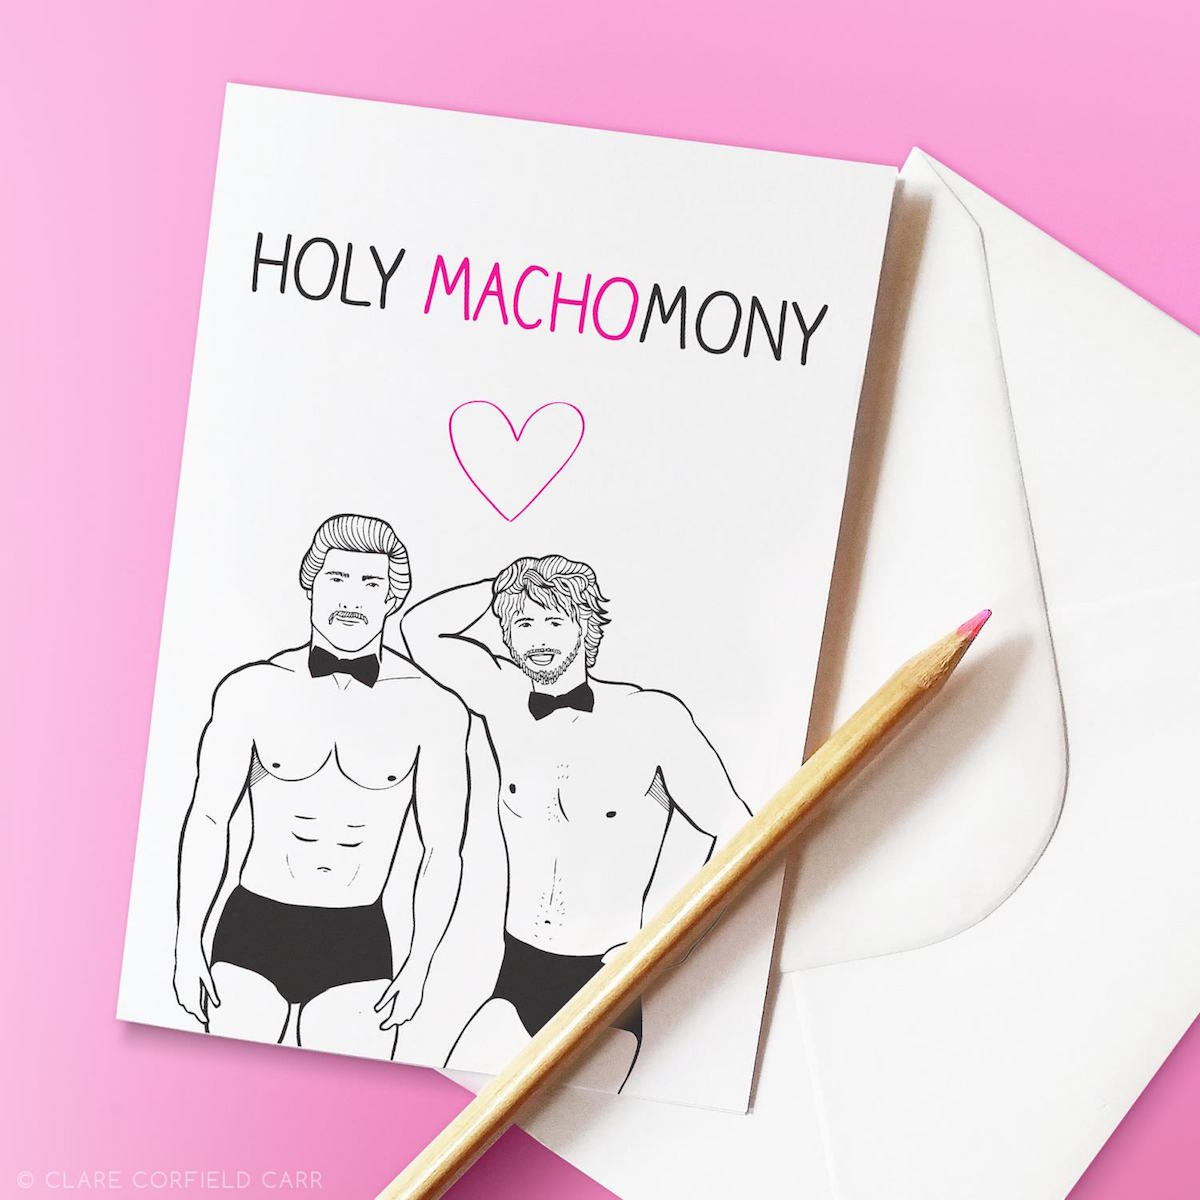 holy-machomony-gay-wedding-card